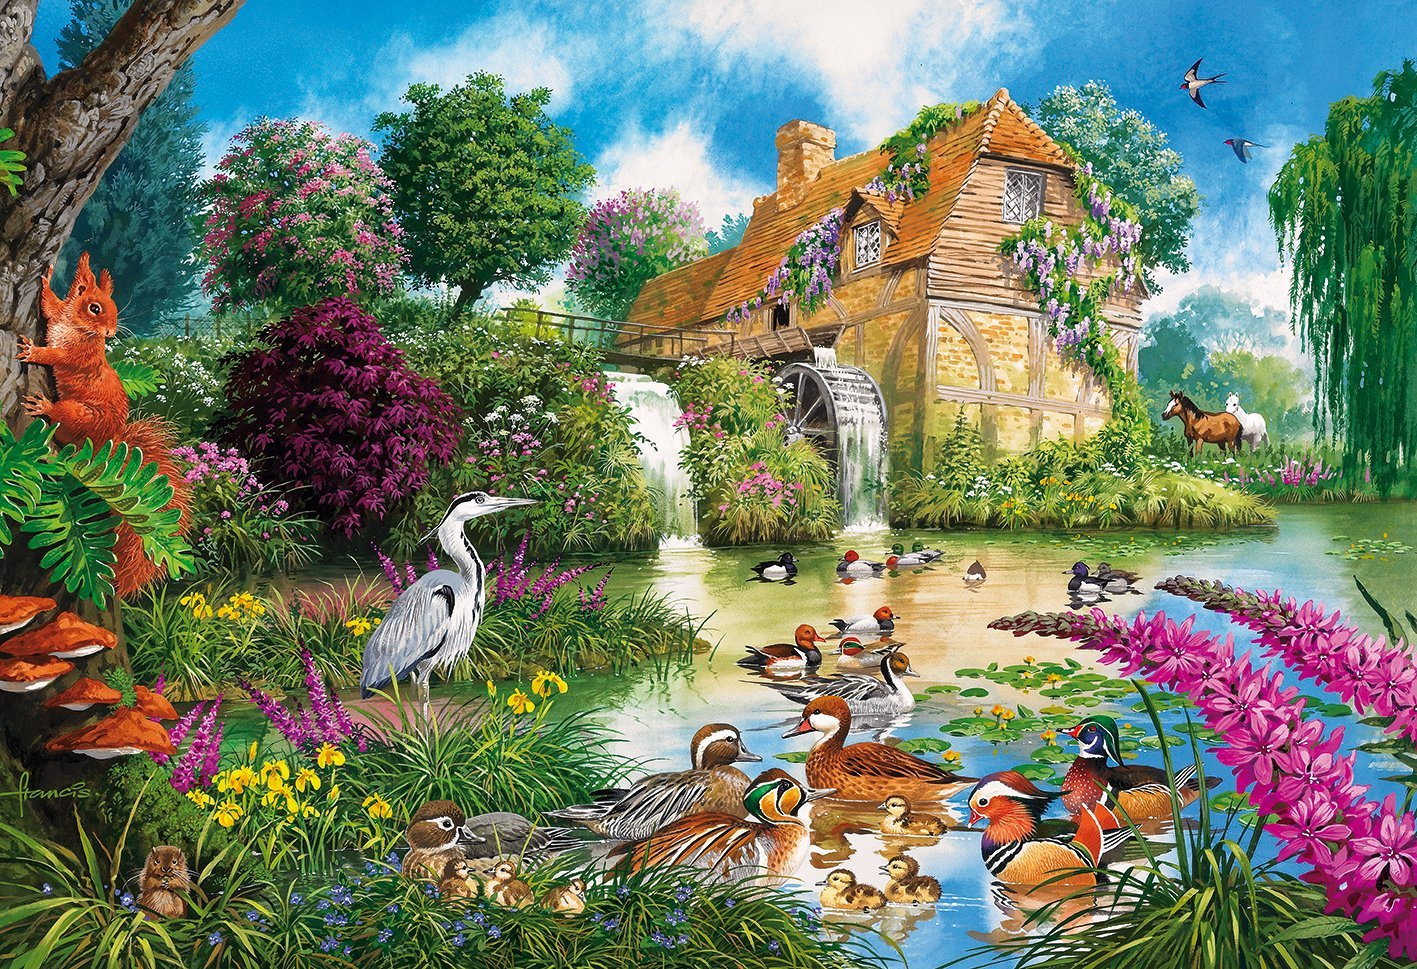 John Francis - The Old Watermill